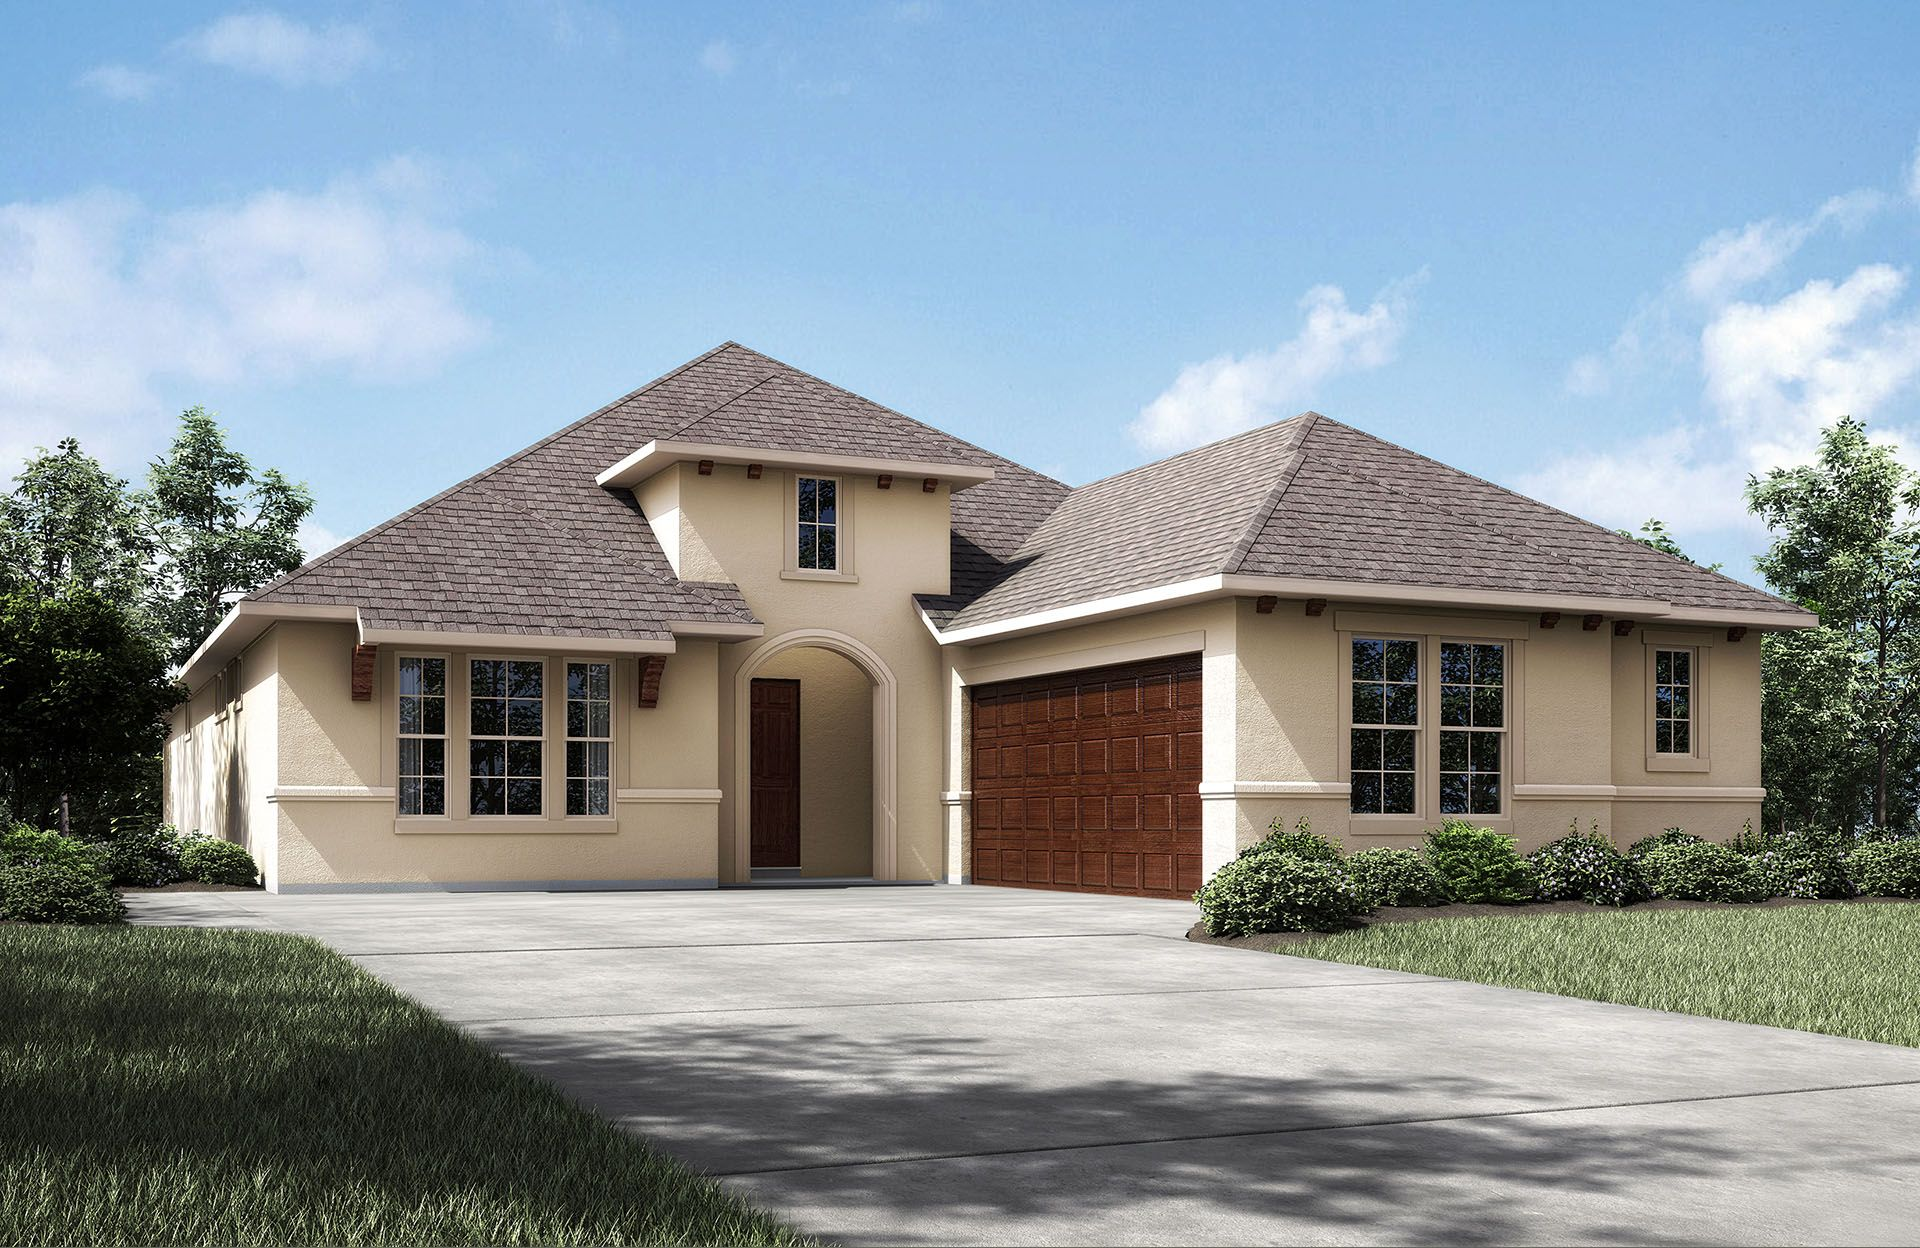 Single Family for Active at Kentshire 30 Katie Lane Trophy Club, Texas 76262 United States